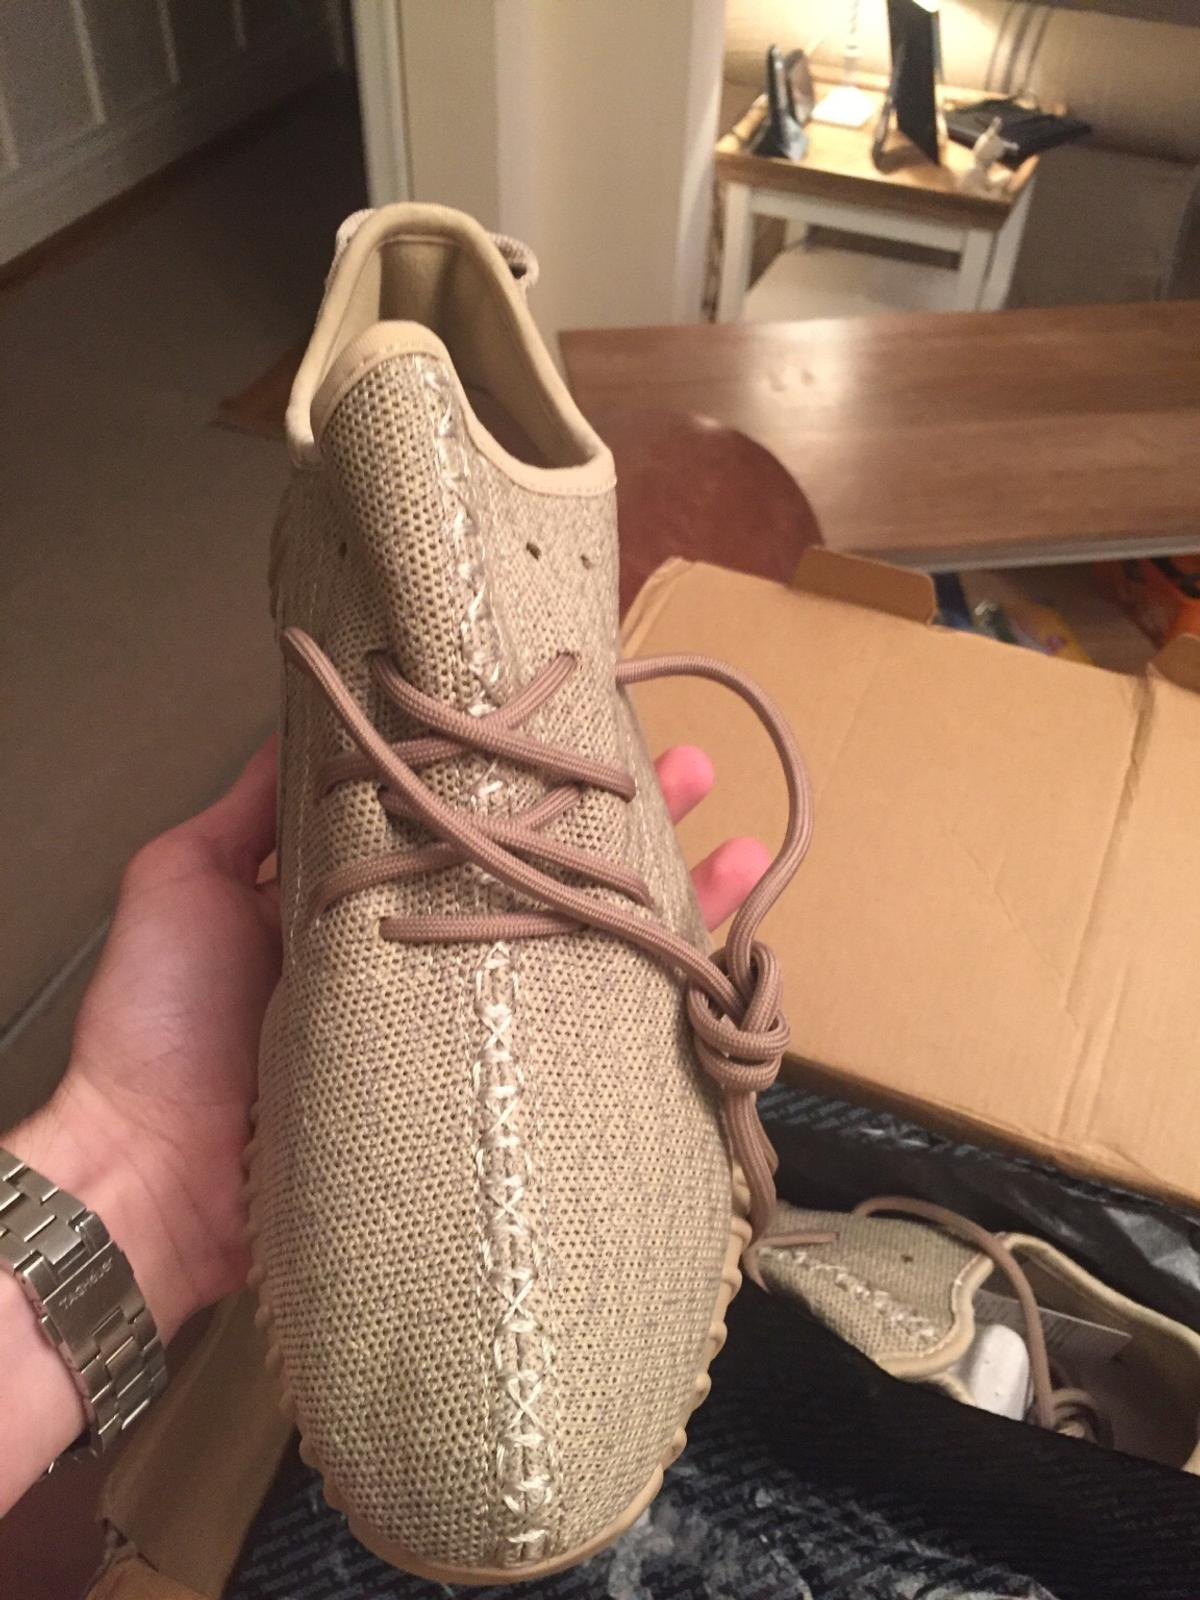 60fd416c465 Adidas yeezy boost 350 (Oxford tan) (uk 9.5) in PR7 Chorley for ...